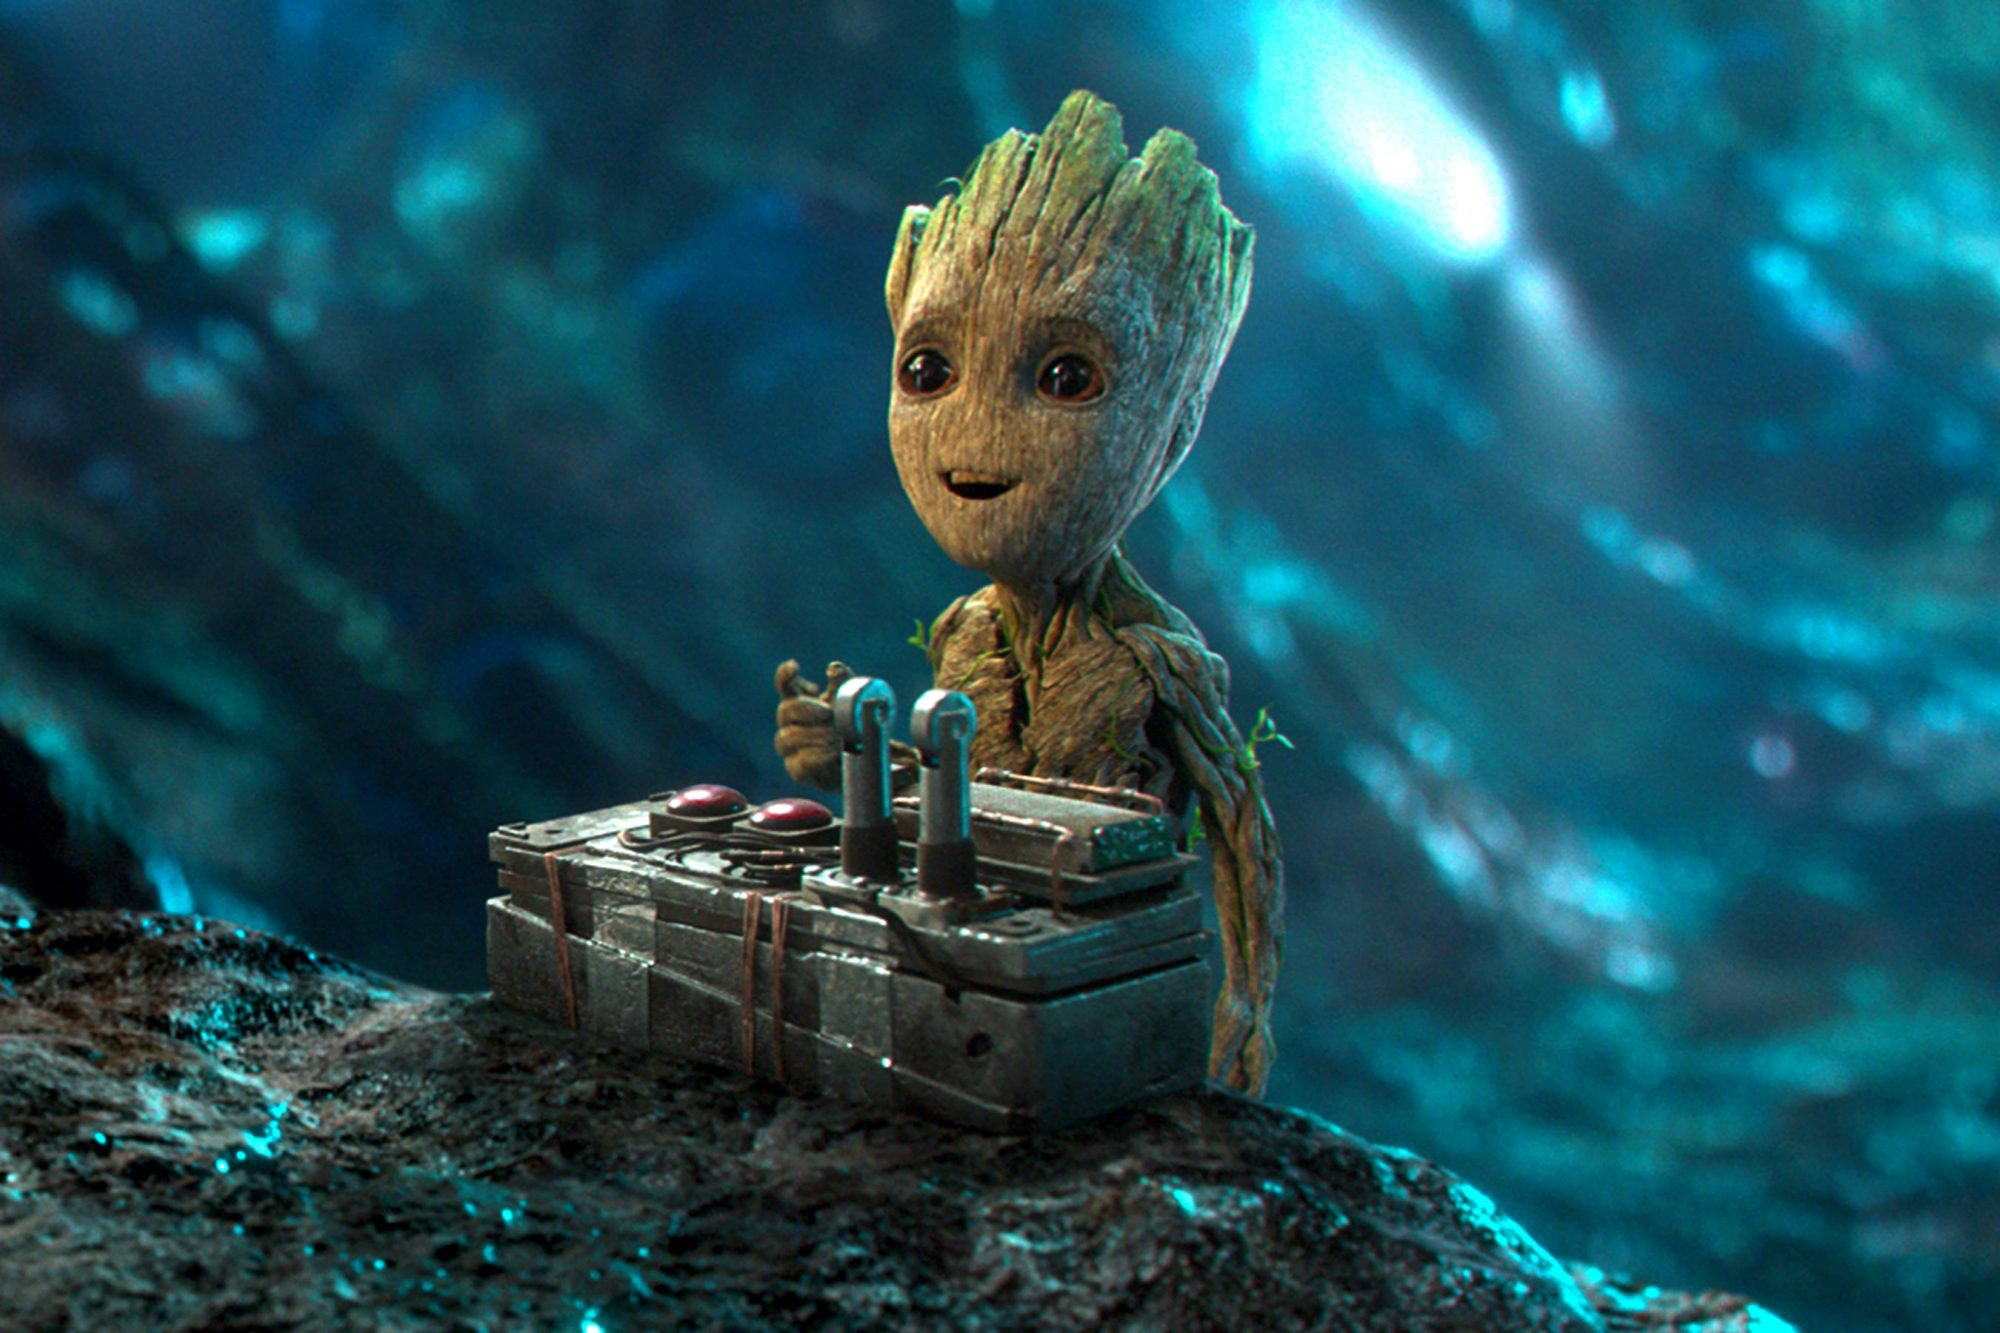 Groot — Guardians of the Galaxy Vol. 2 (2017)